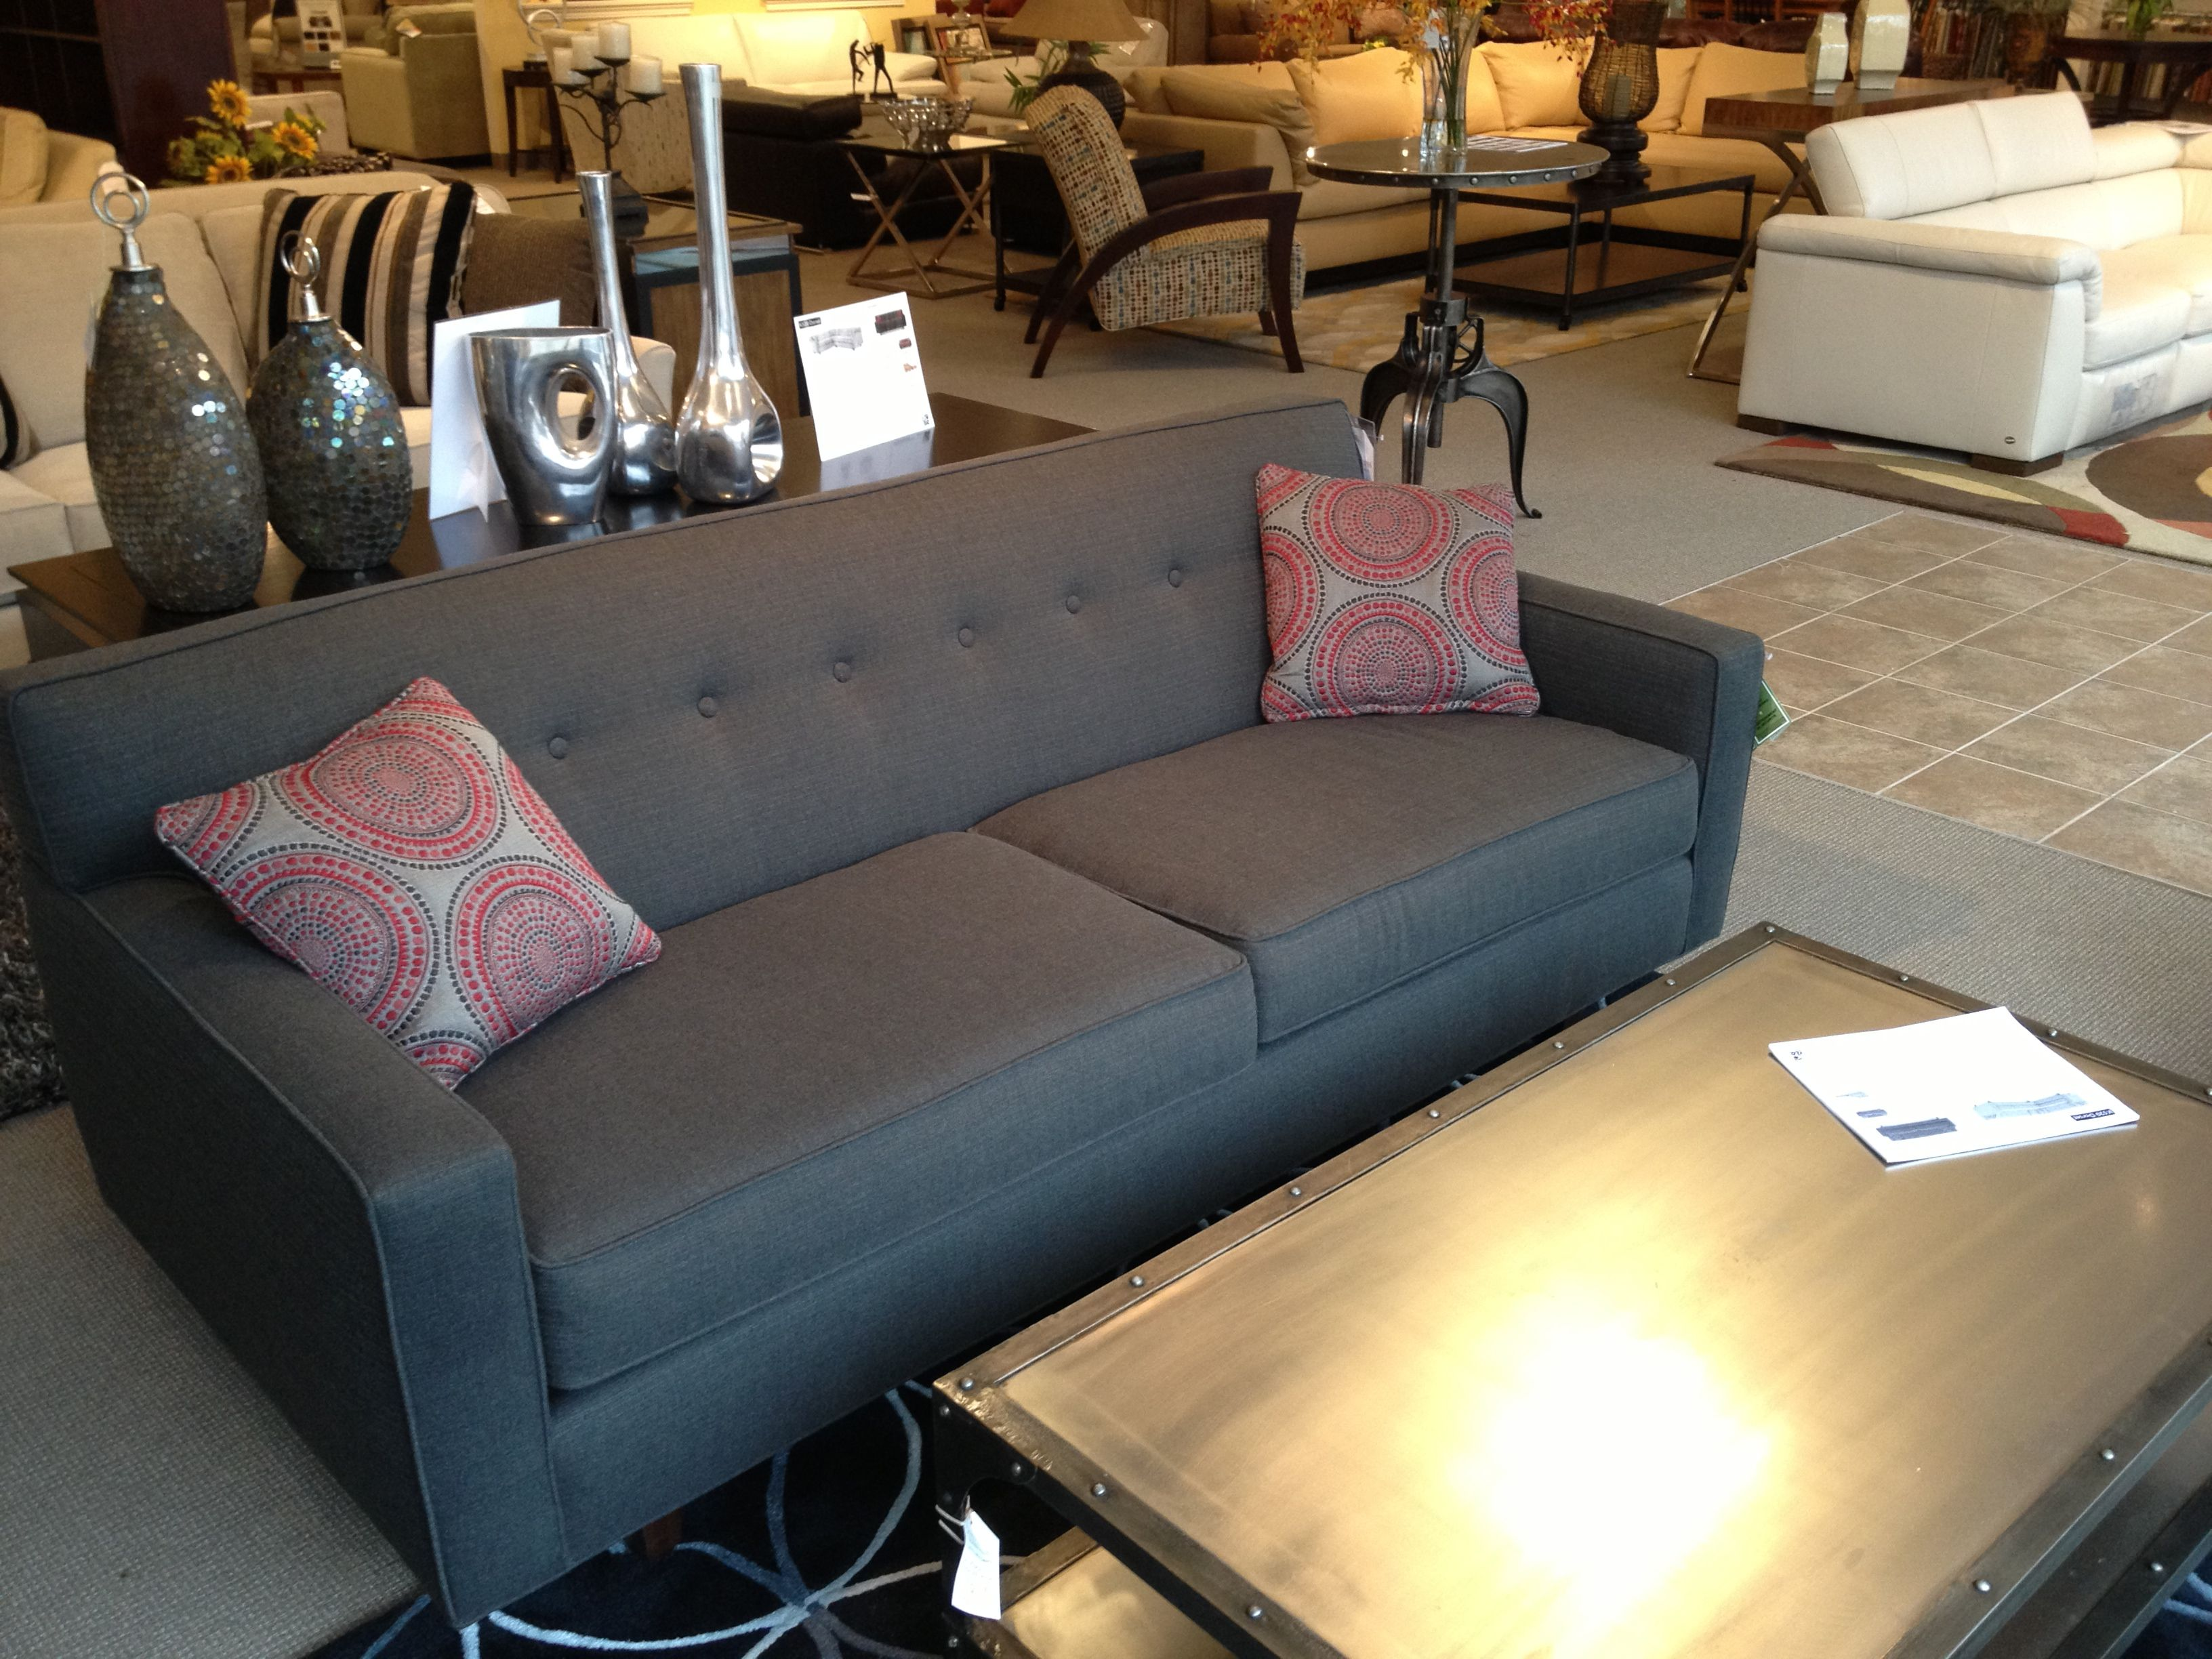 The Dorset Sofa From Rowe Furniture Is